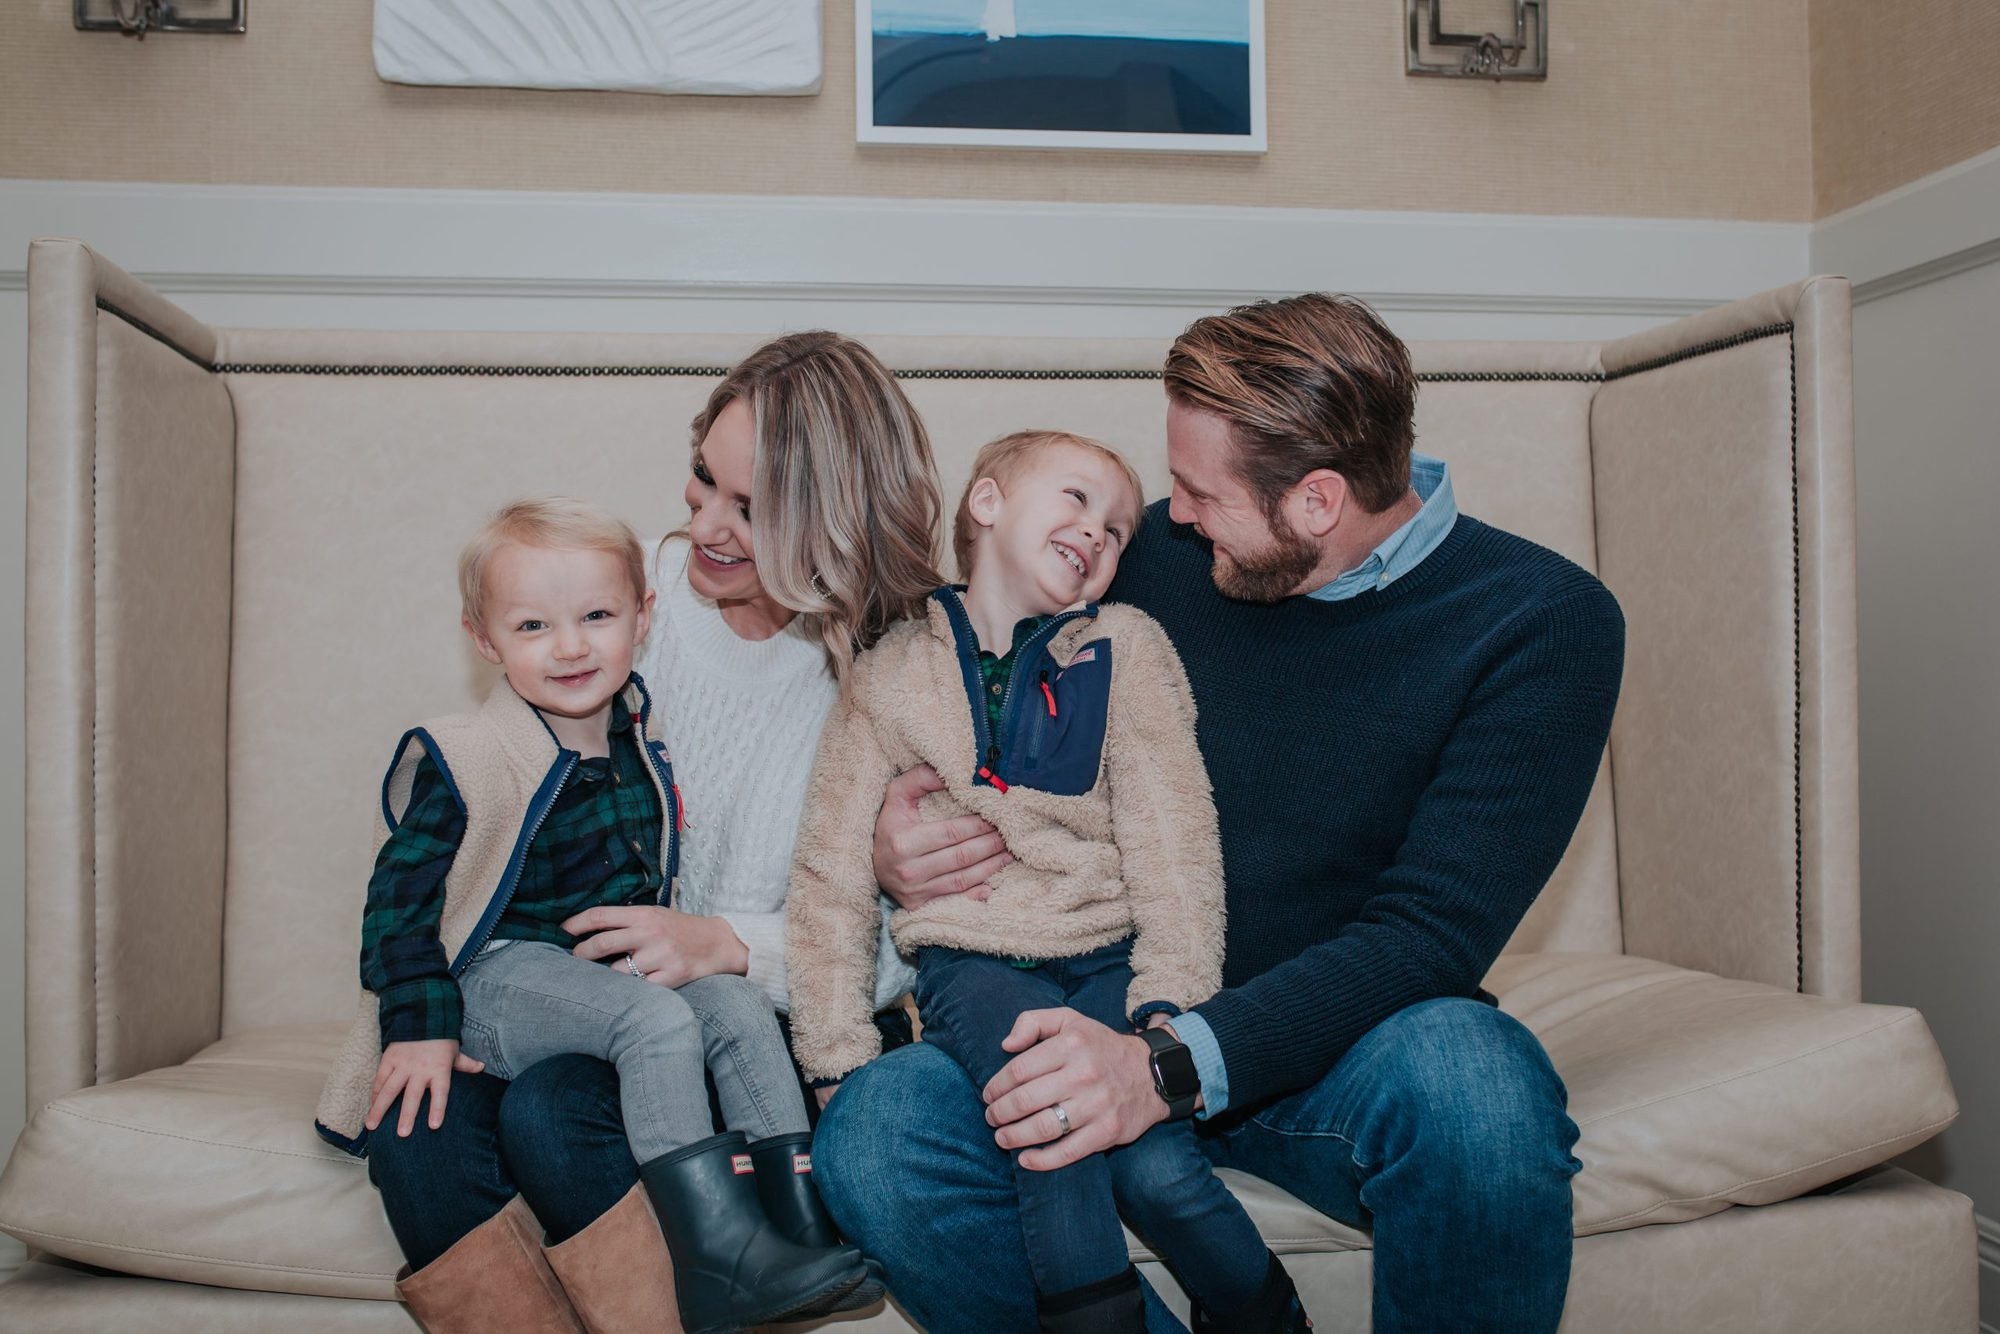 5 Benefits of Getting the Flu Vaccine in Michigan featured by top MI lifestyle blogger, House of Navy: picture of family with two toddler boys laughing | Flu Vaccine Benefits by popular Michigan lifestyle blog, The House of Navy: image of a mom and dad sitting on a tan couch with their two young boys.